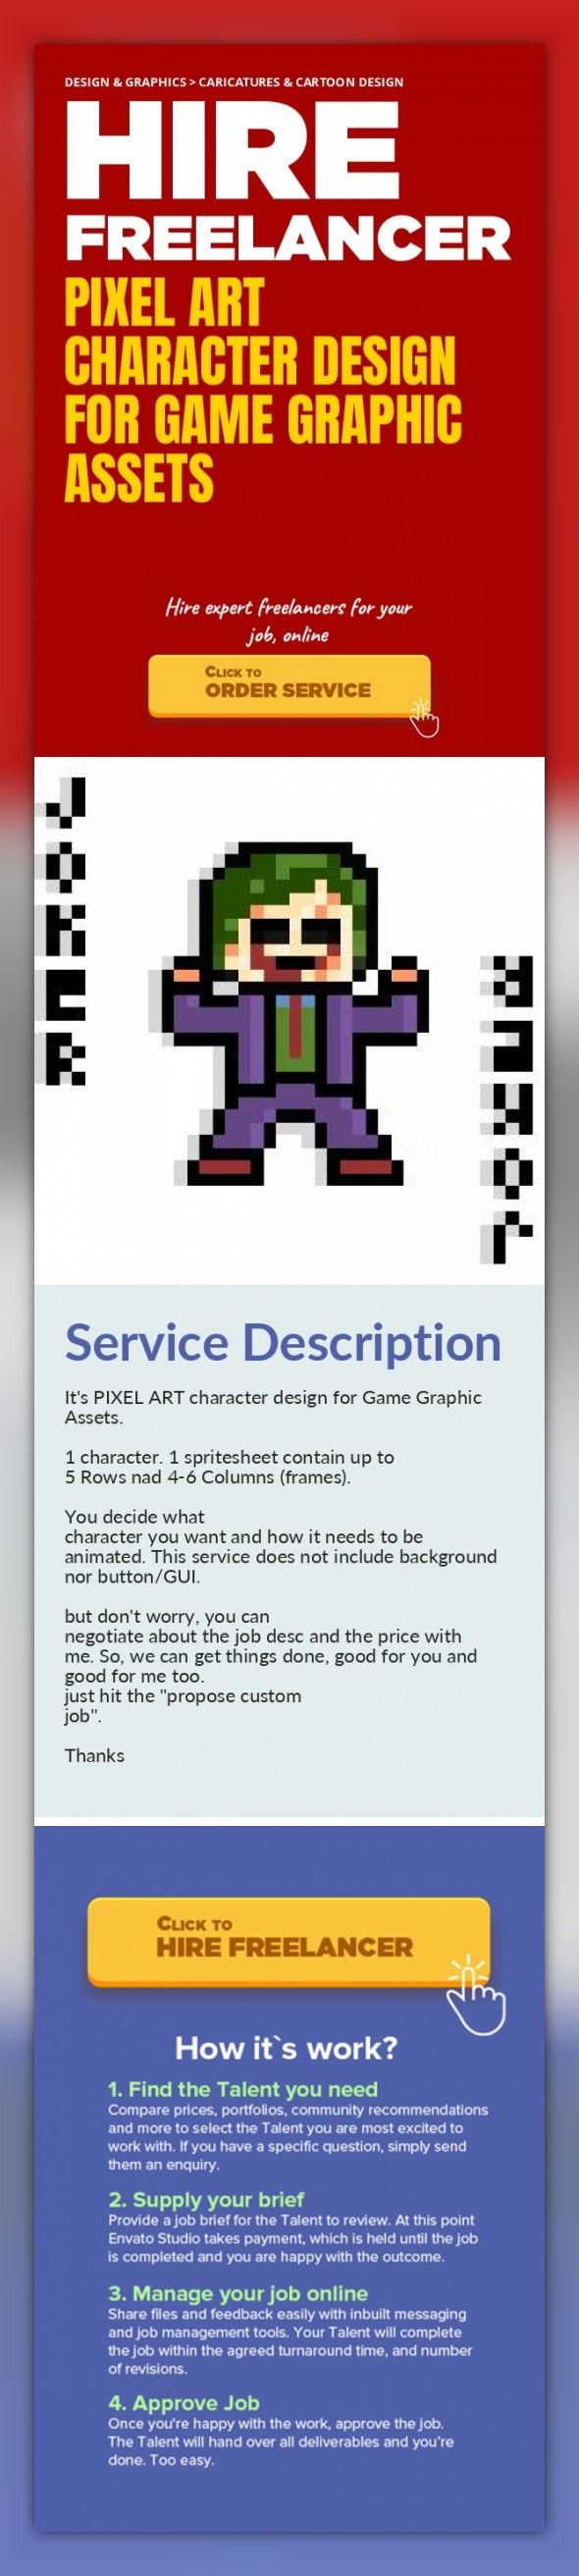 Pixel Art Character Design for Game Graphic Assets Design & Graphics, Caricatures & Cartoon Design   It's PIXEL ART character design for Game Graphic Assets.    1 character. 1 spritesheet contain up to 5 Rows nad 4-6 Columns (frames).    You decide what character you want and how it needs to be animated. This service does not include background nor button/GUI.    but don't worry, you can negotiate...